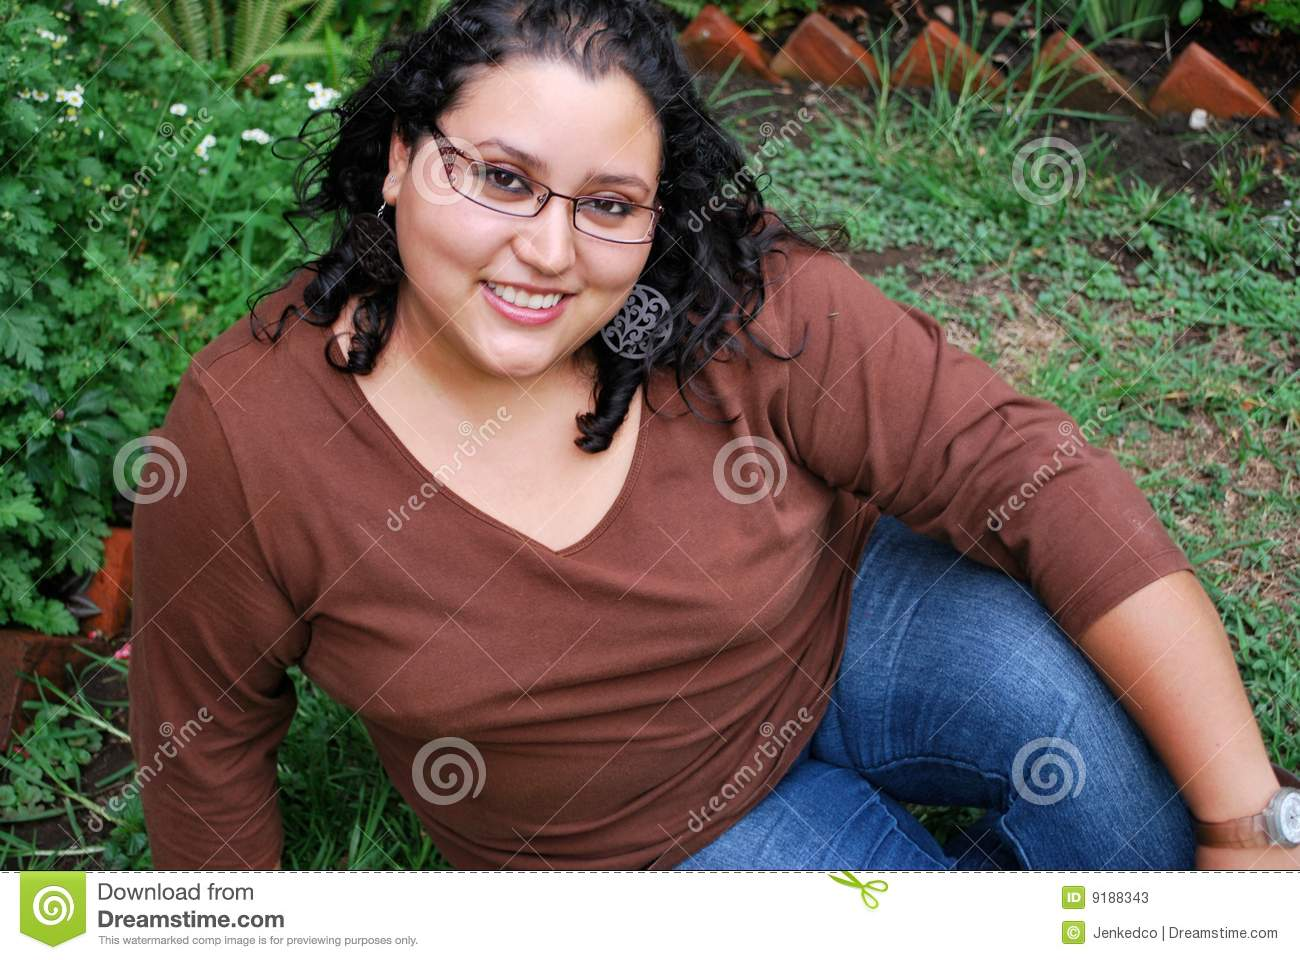 hispanic single women in beauty Hot latina women 3,141 likes 9 talking about this hot latina women are so rican beauty can women for dating.